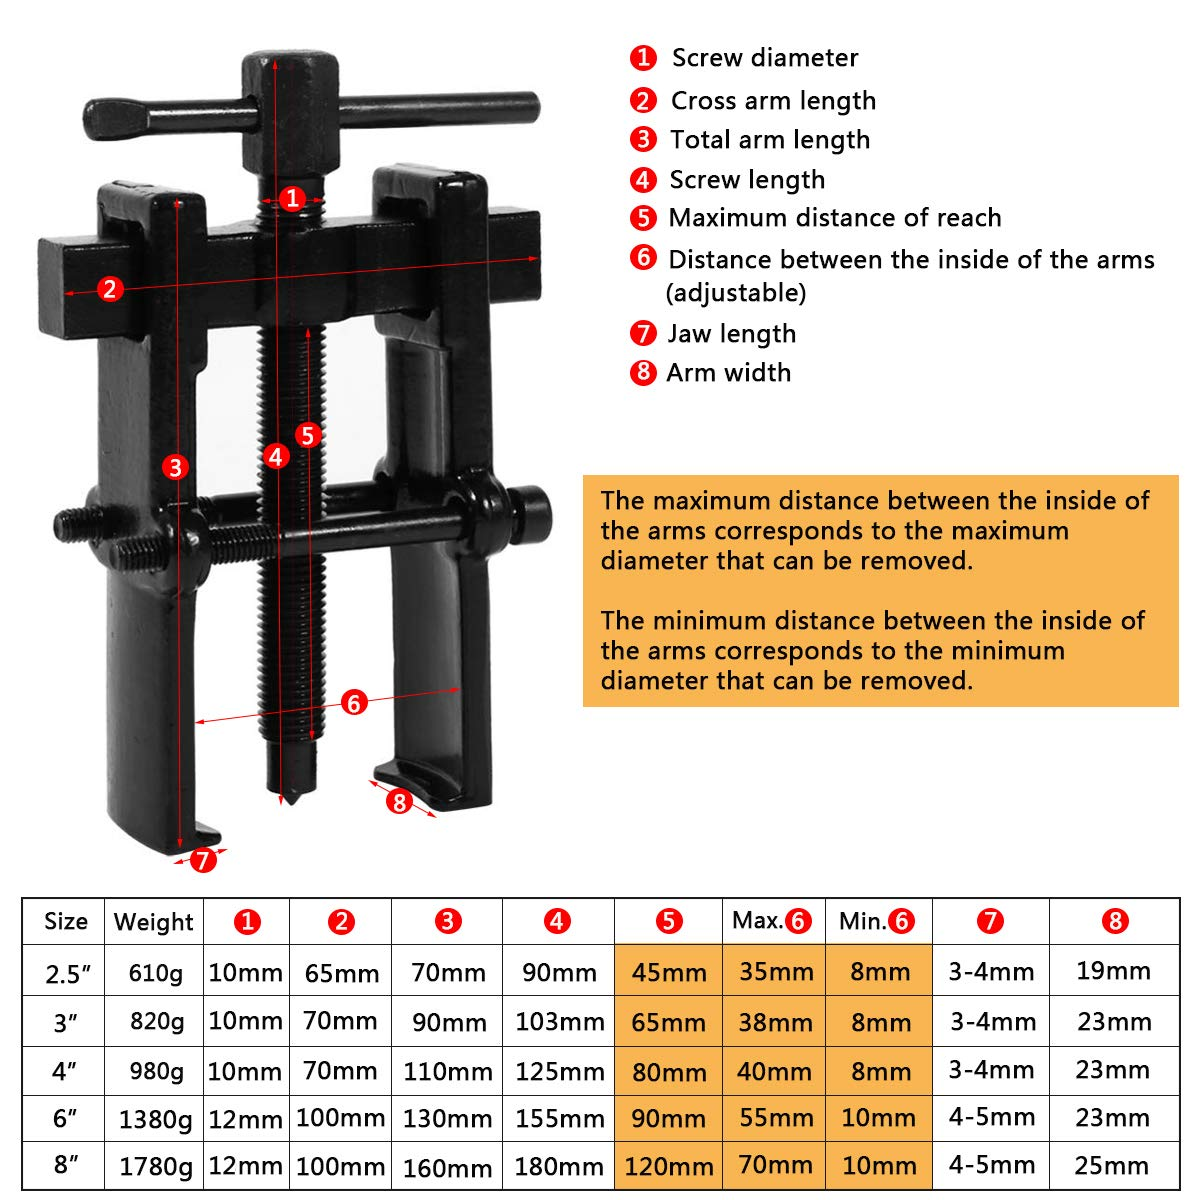 3inch(3865) Qiilu Two Jaw Twin Legs Bearing Gear Puller Remover Hand Tool Removal Kit